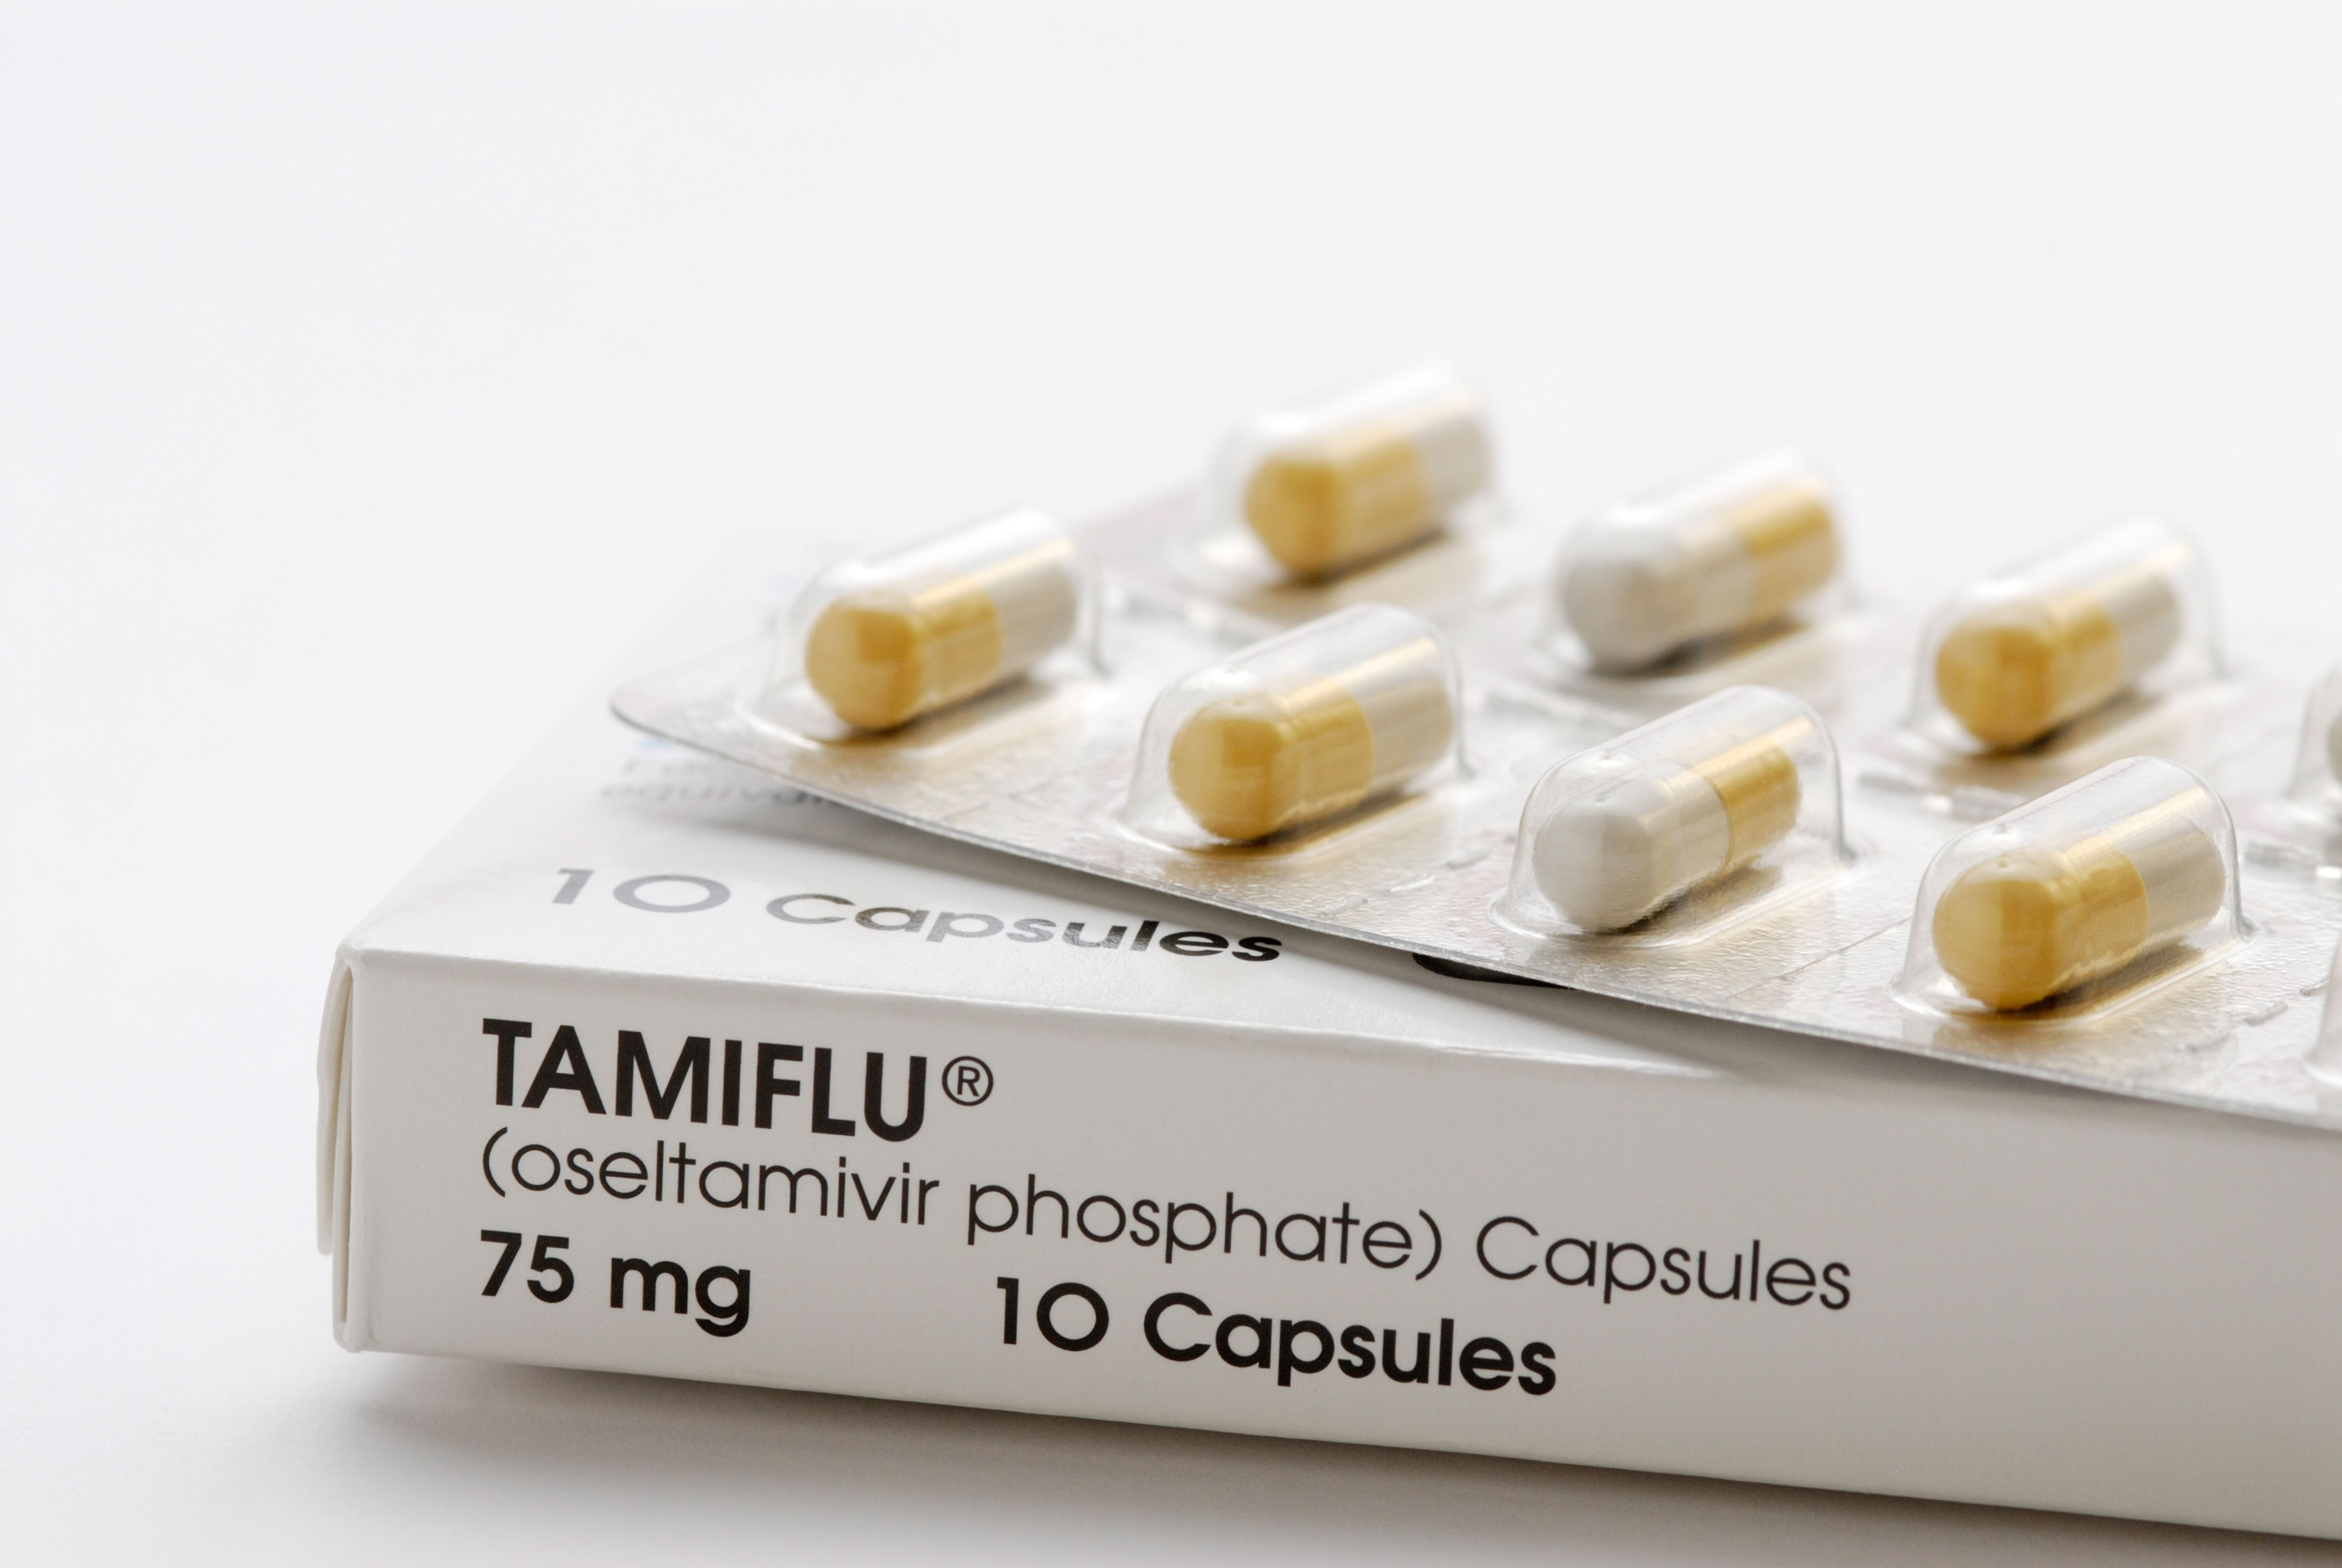 Is Tamiflu Safe? - Side Effects of Tamiflu, Explained by Doctors